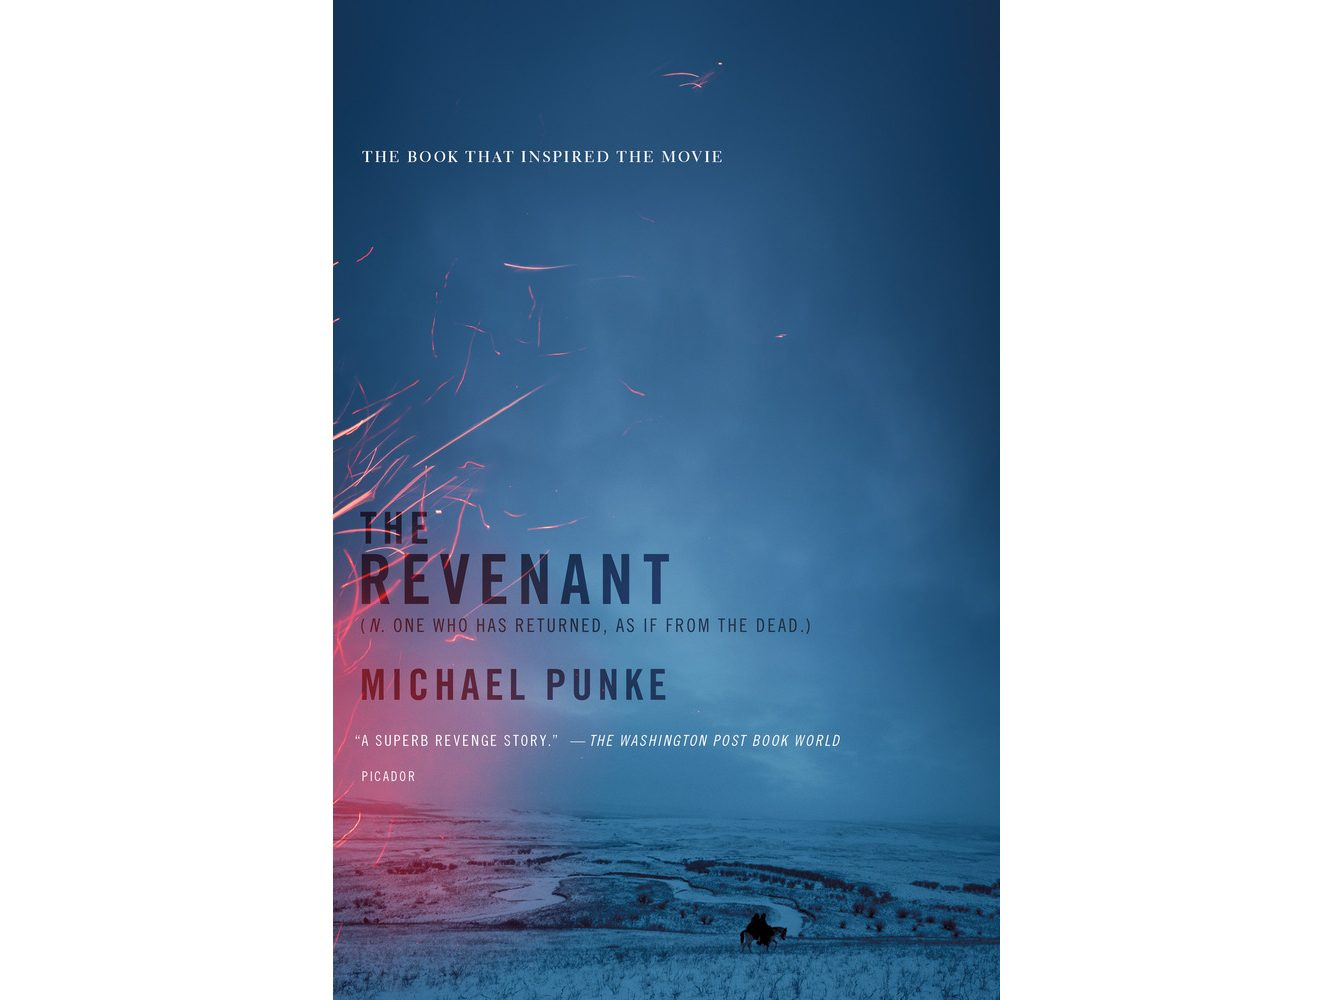 1. The Revenant by Michael Punke